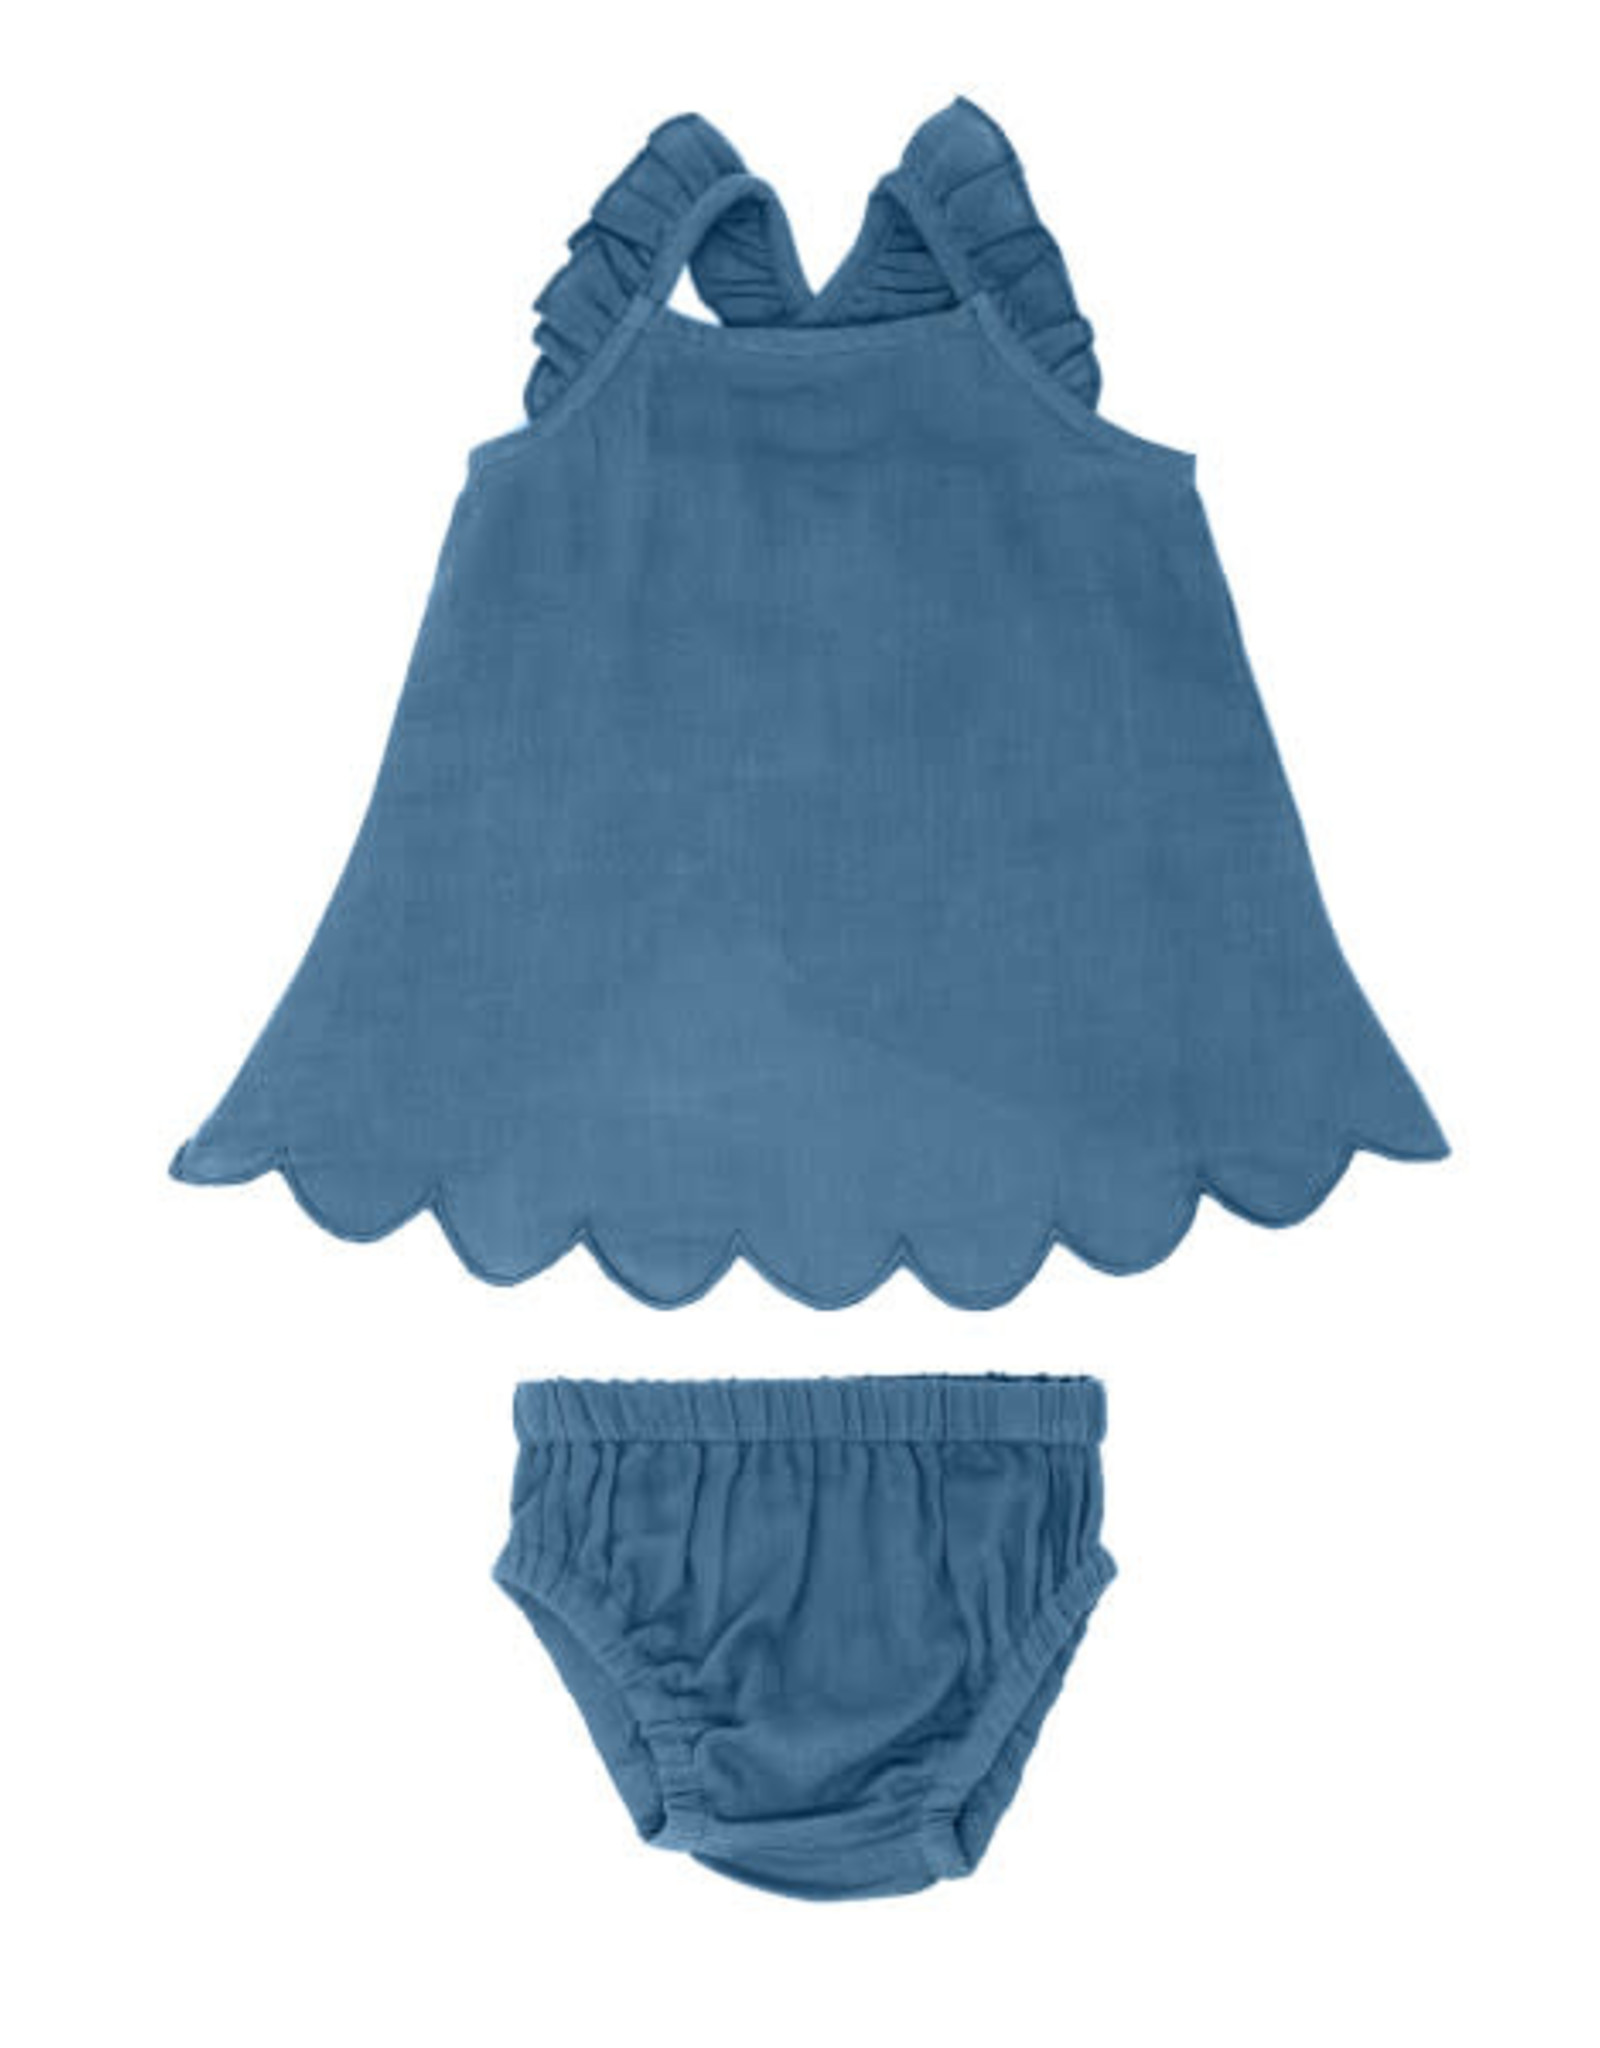 L'oved Baby Muslin Tunic Top & Bloomer Set Pacific